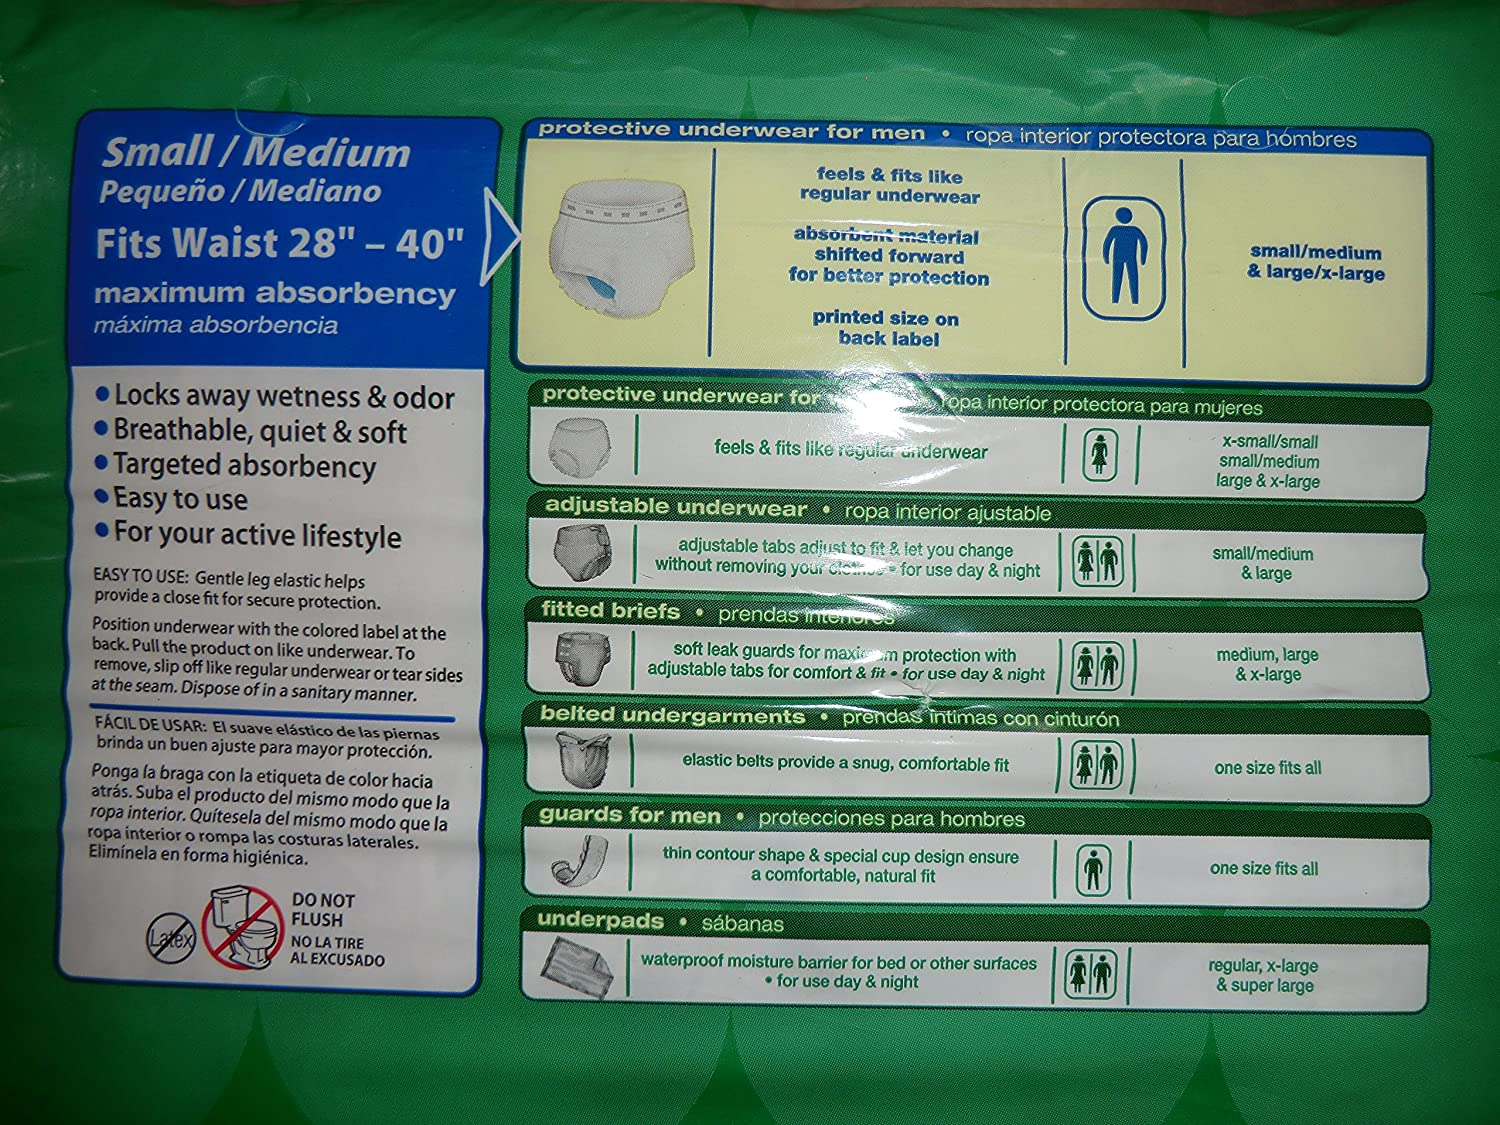 Amazon.com: CVS Mens Underwear Maximum Absorbency Small/Medium (28-40 Inches) - Compare to Depends - (20 count): Health & Personal Care